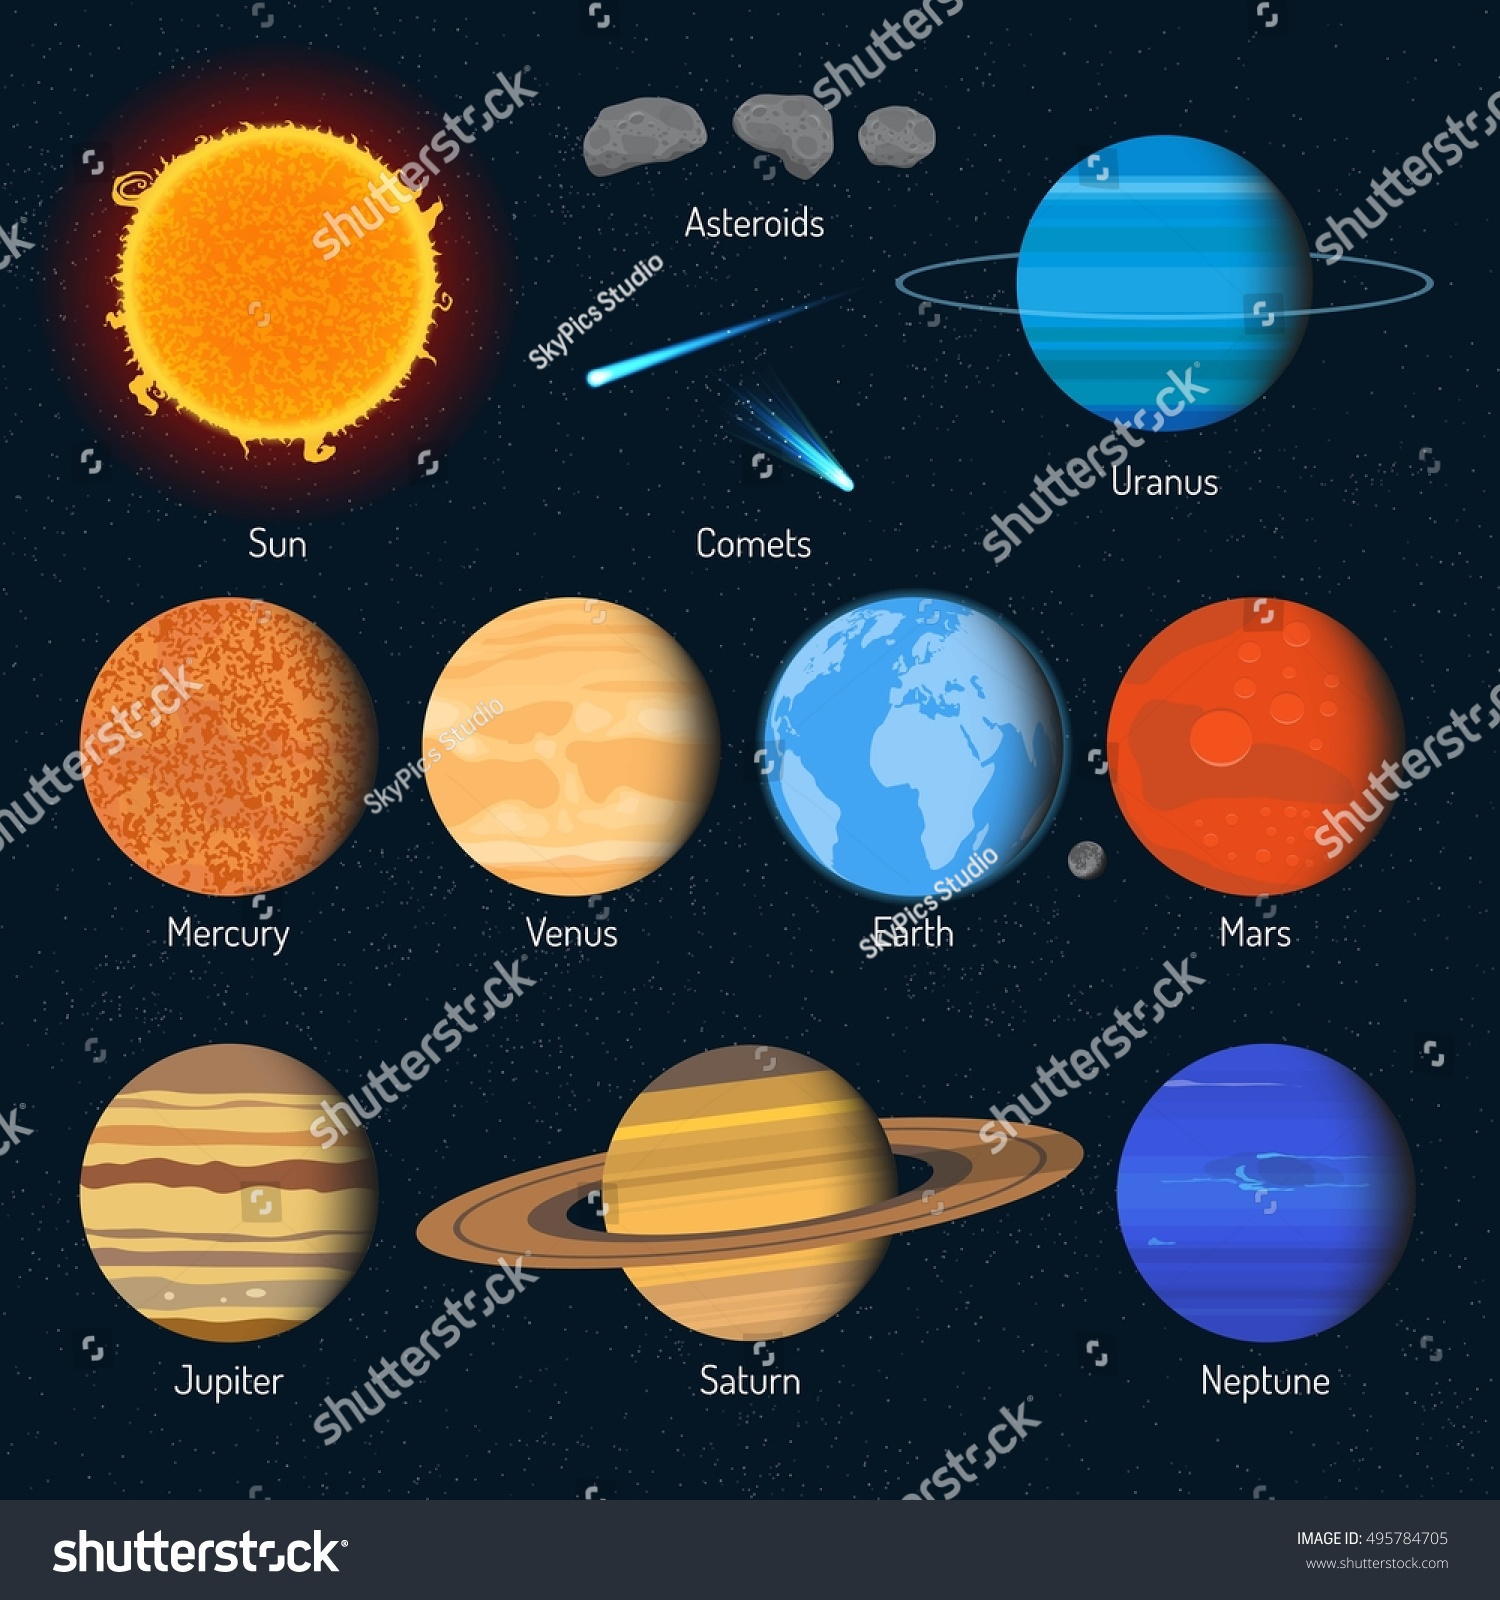 planets and outer space diagram - photo #13